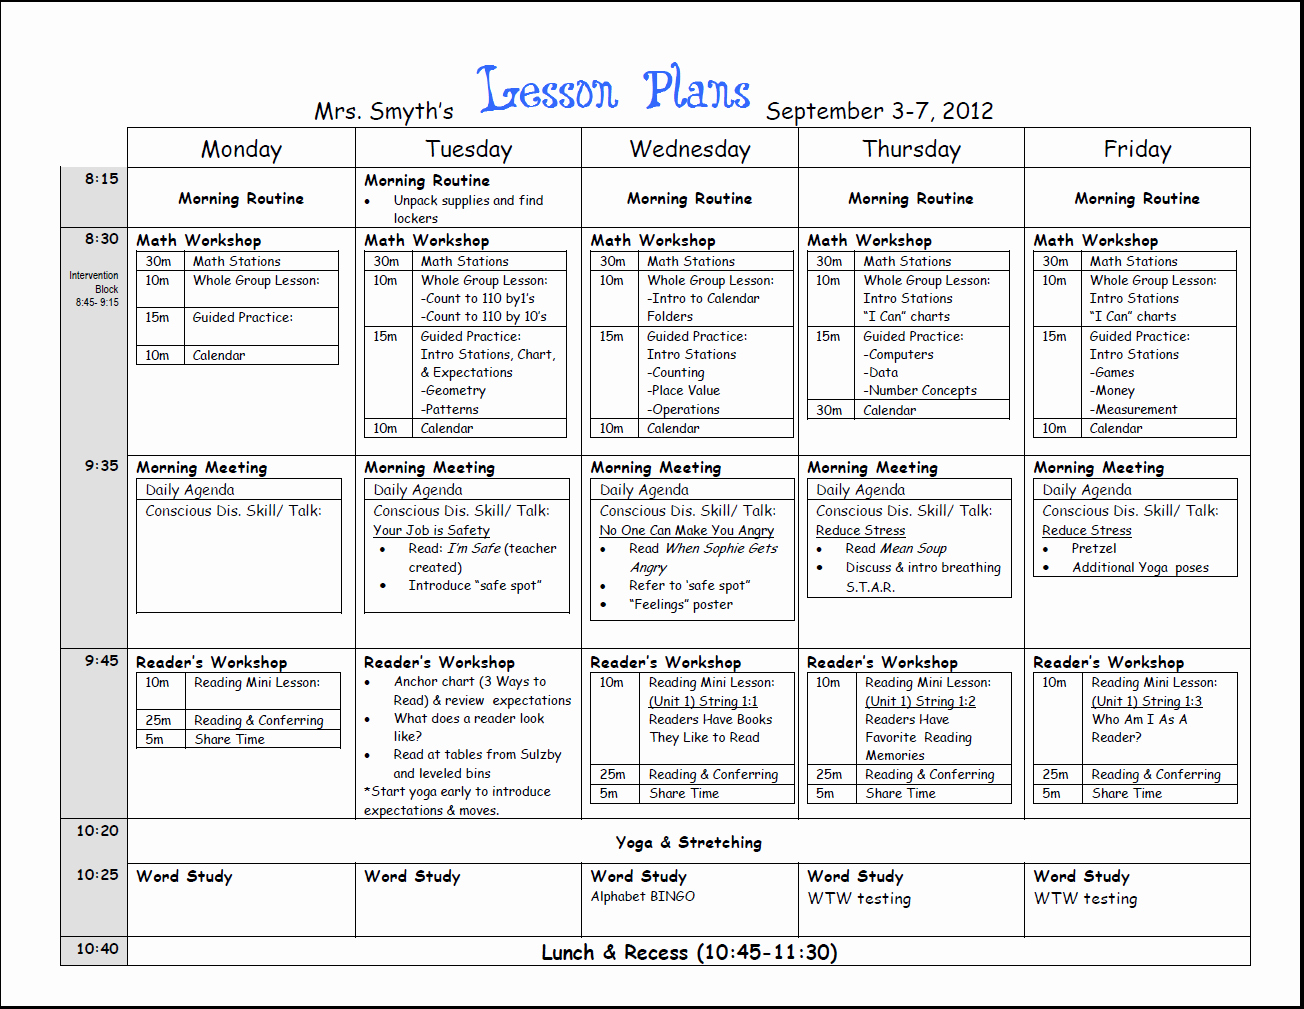 Unit Lesson Plans Template Lovely Free Weekly Lesson Plan Template and Teacher Resources